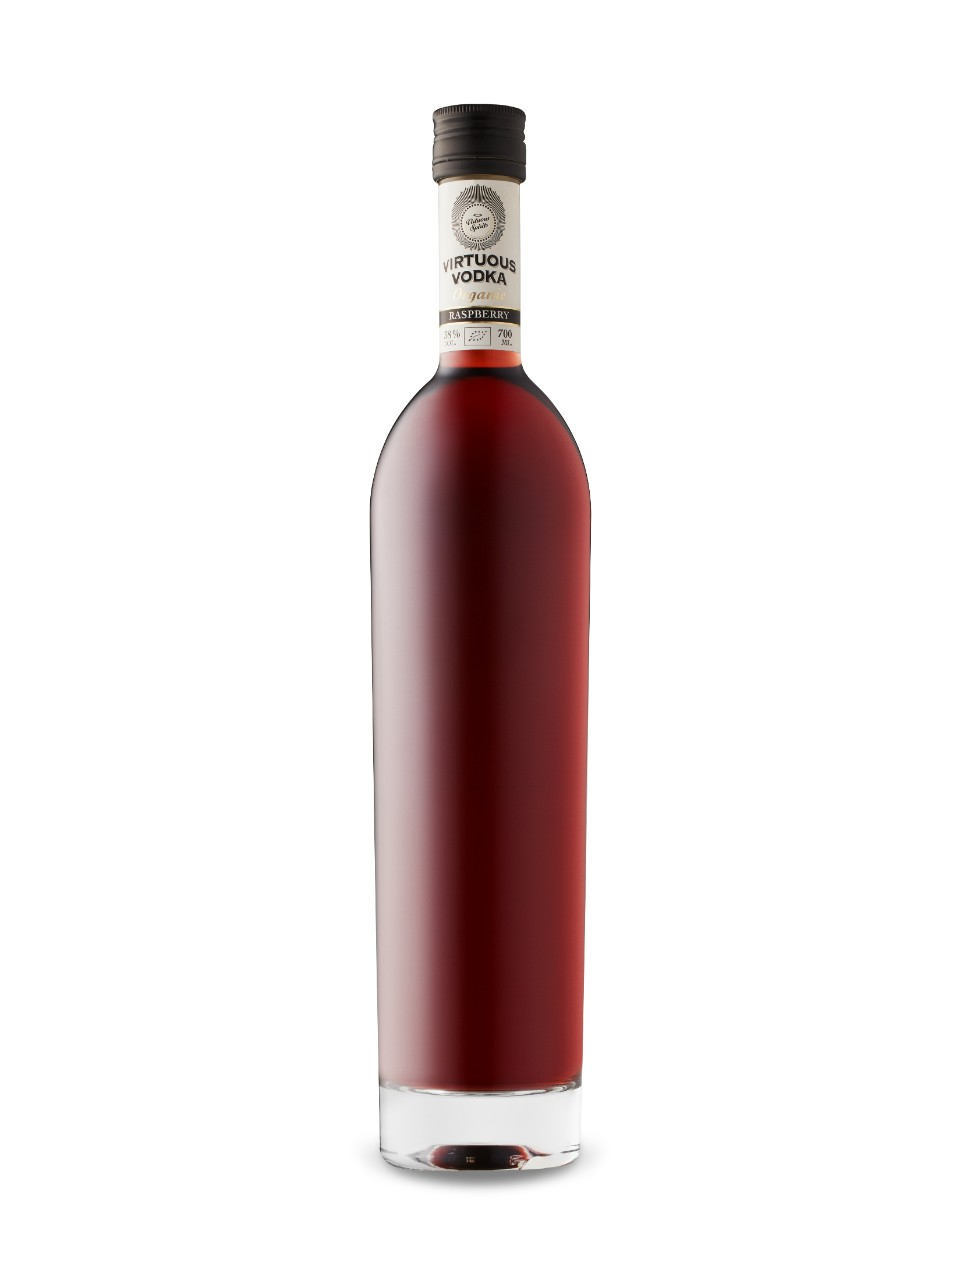 Virtuous Vodka Organic Raspberry from LCBO